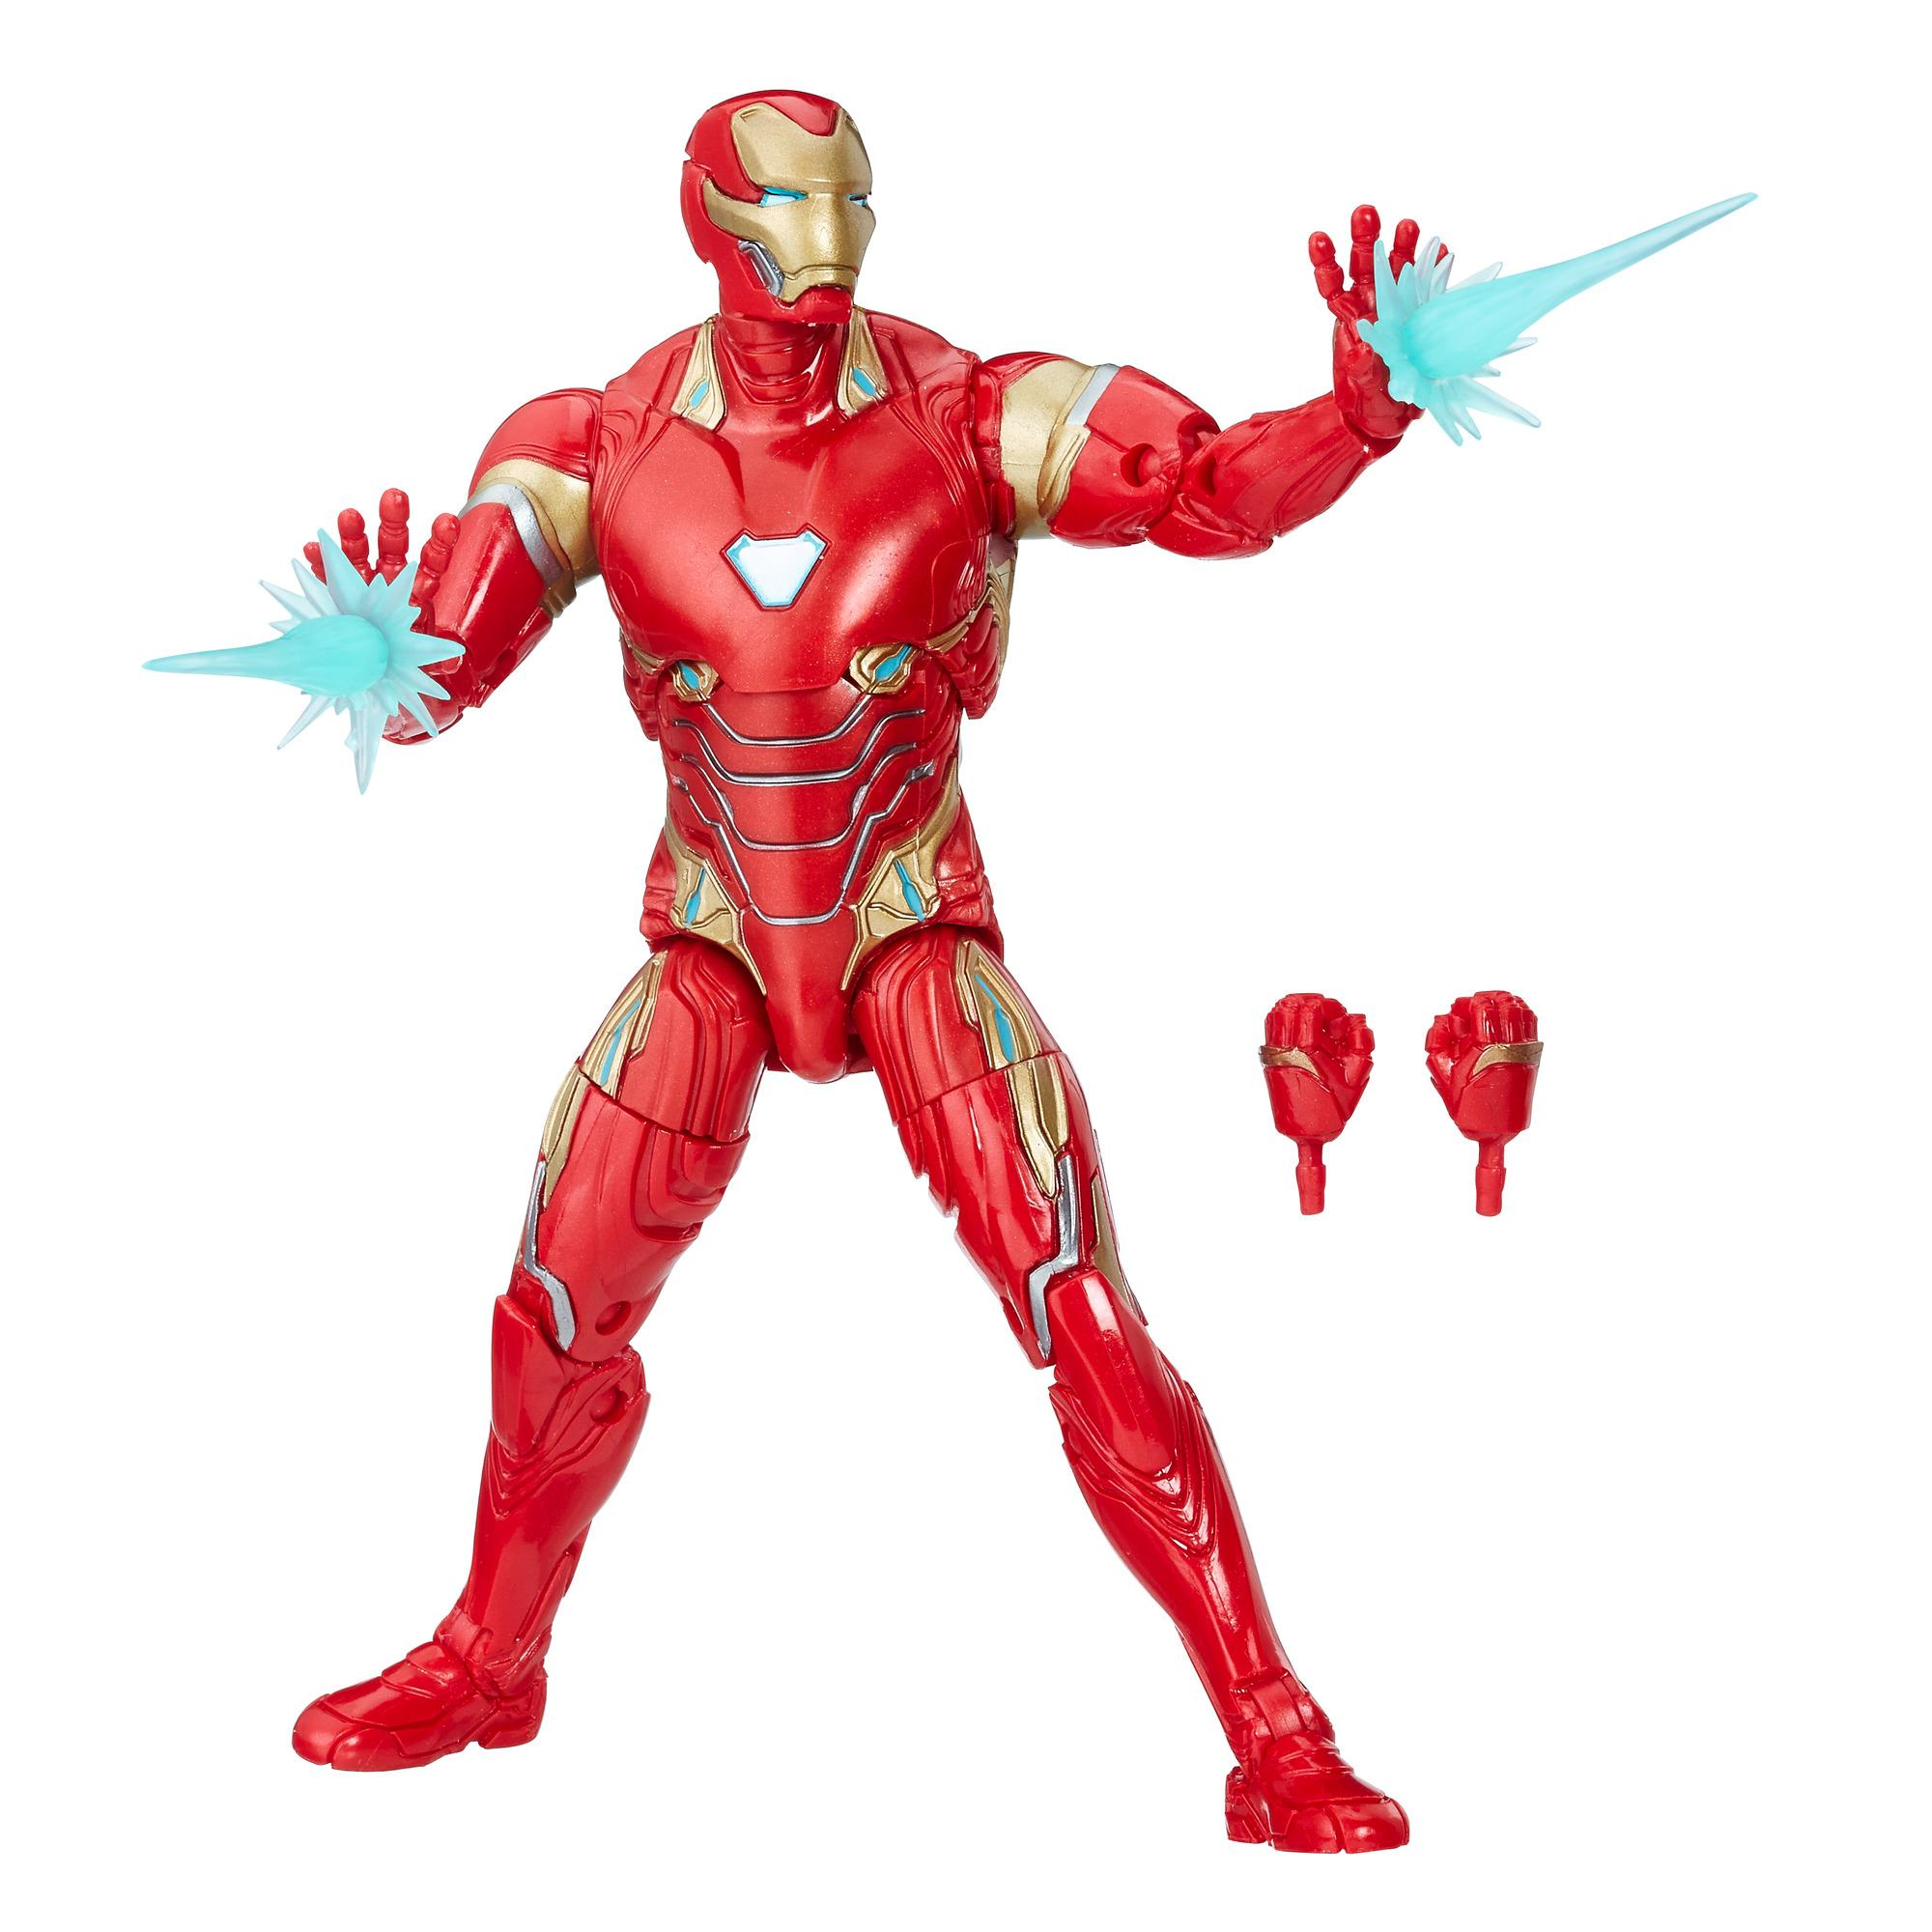 Avengers Marvel Legends Series 6-inch Iron Man